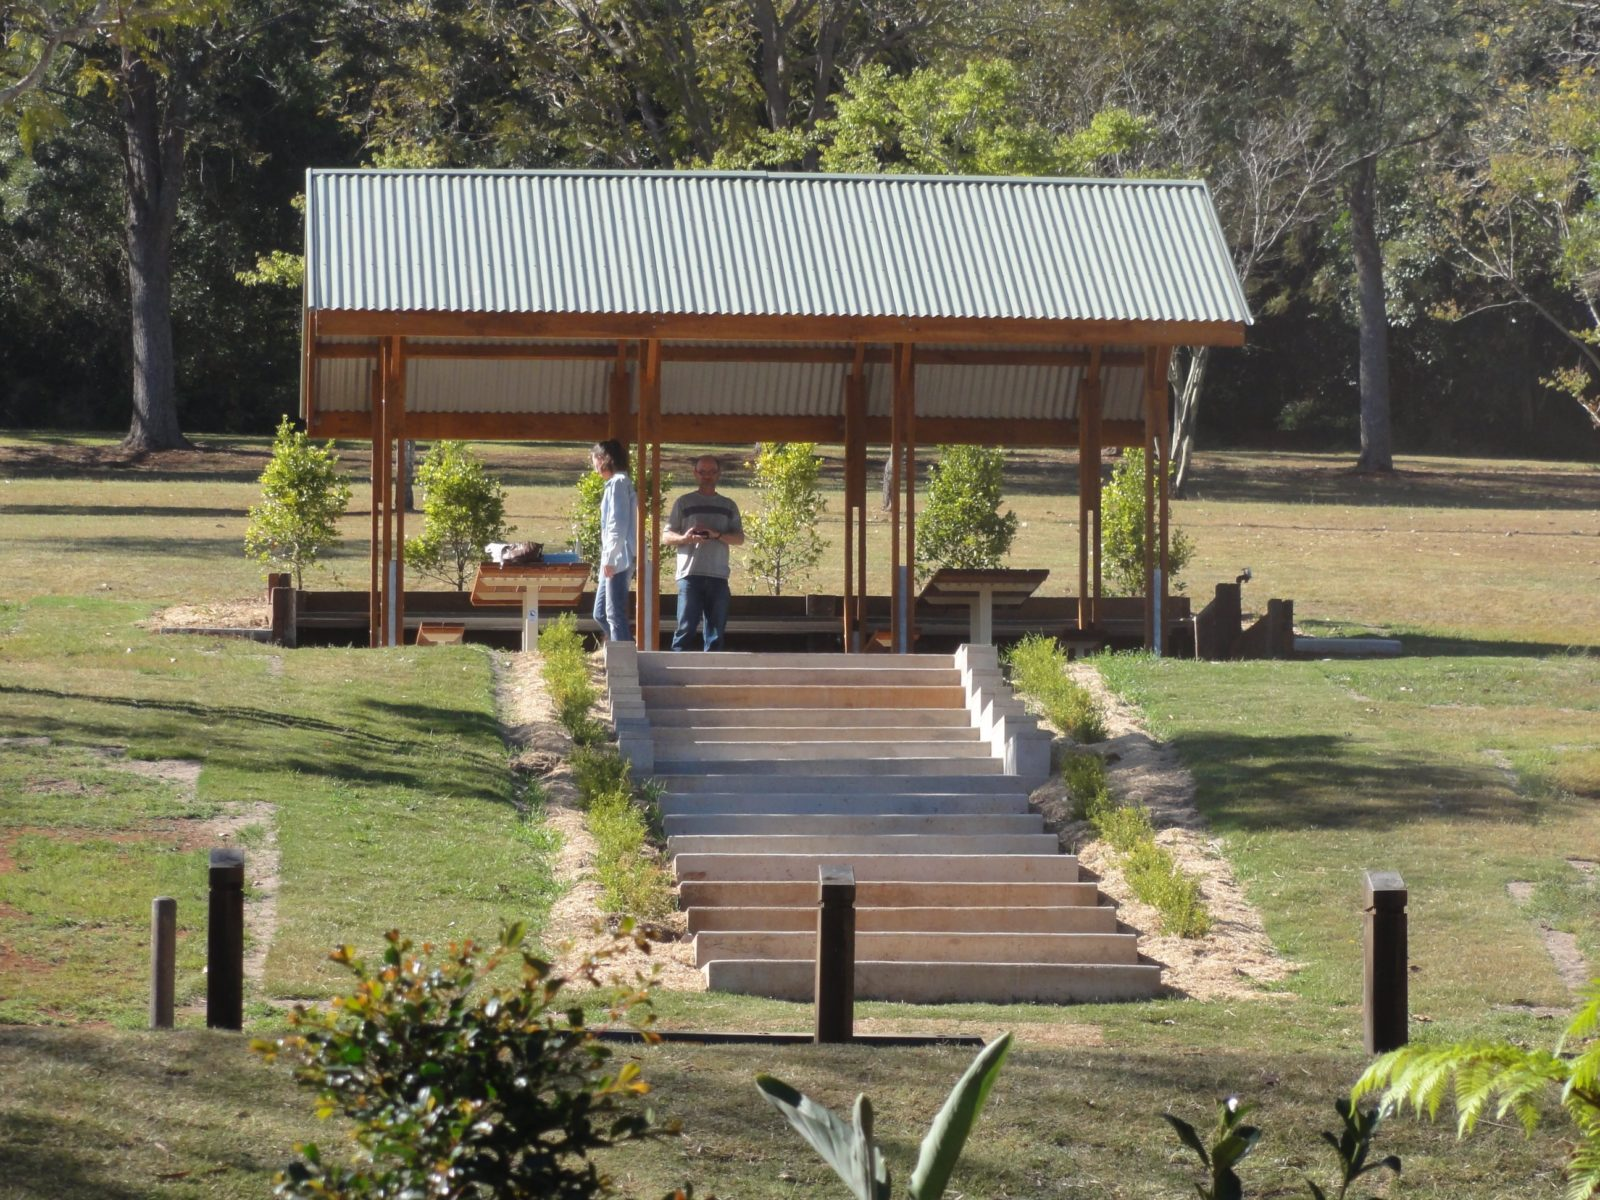 Picnic area at Apex Park